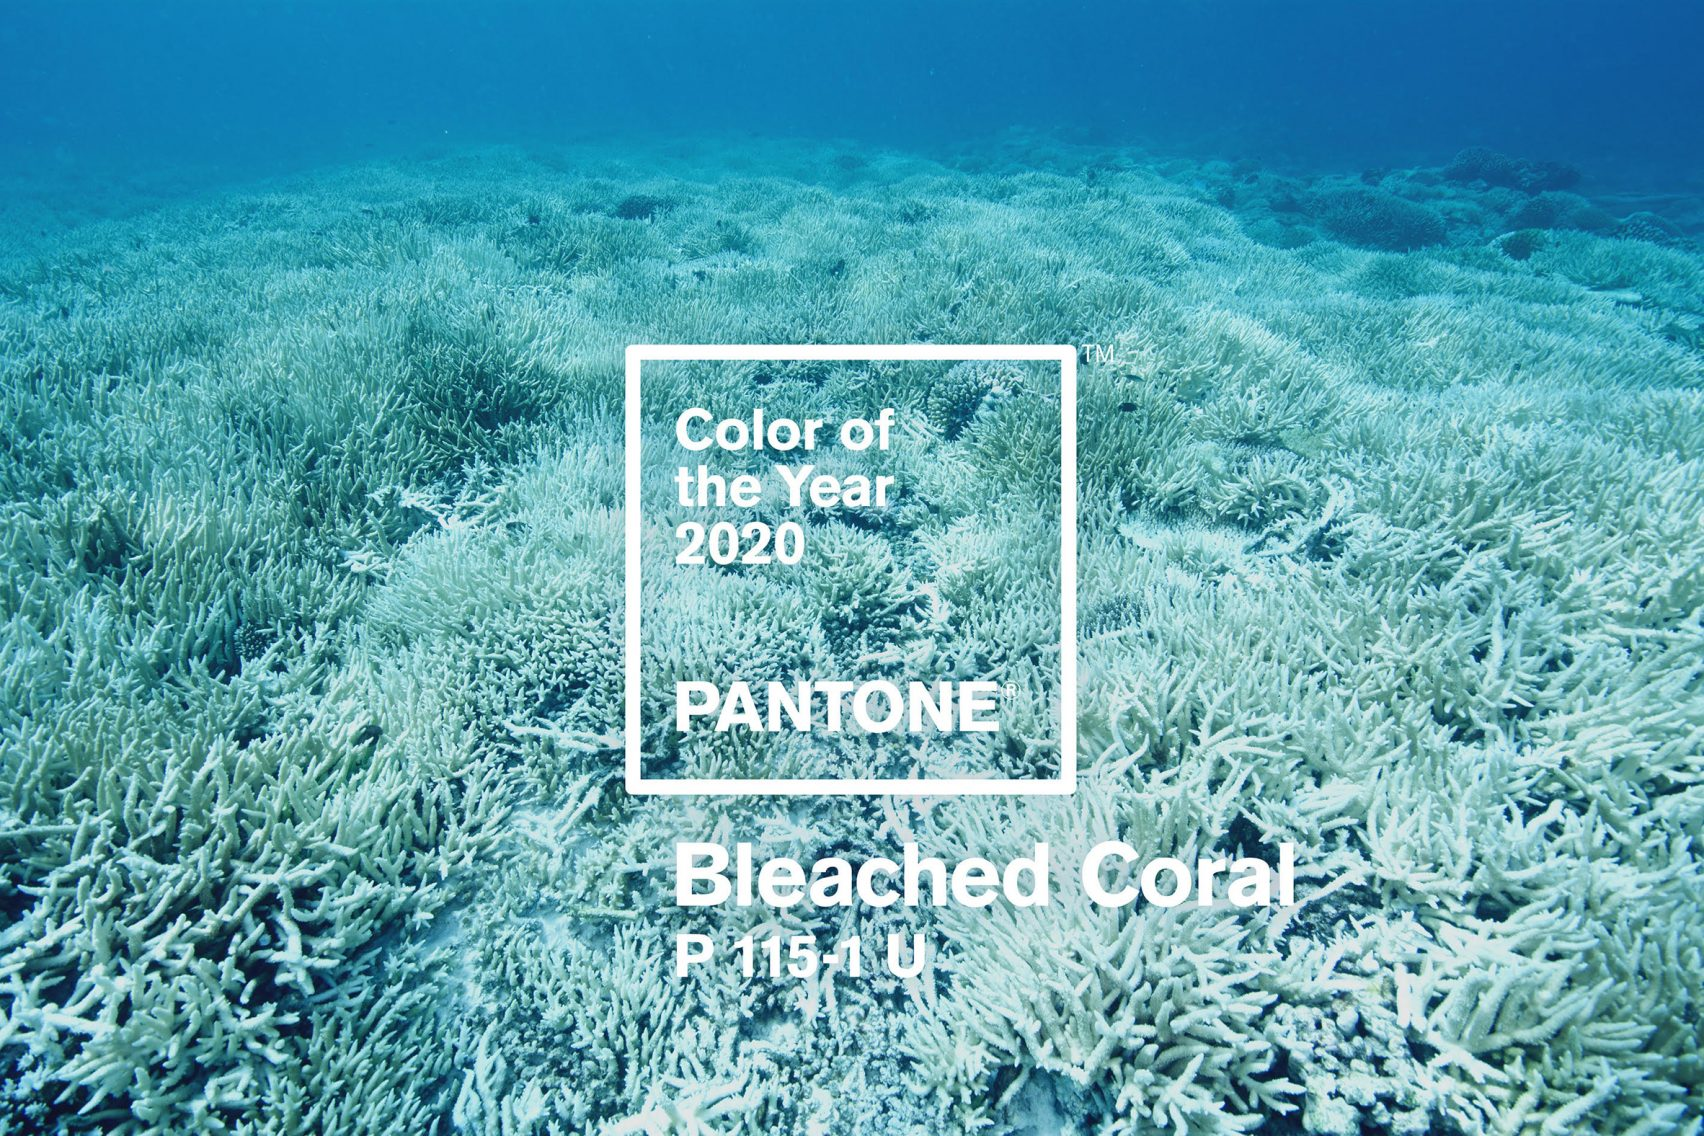 Bleached Coral for color of the year 2020